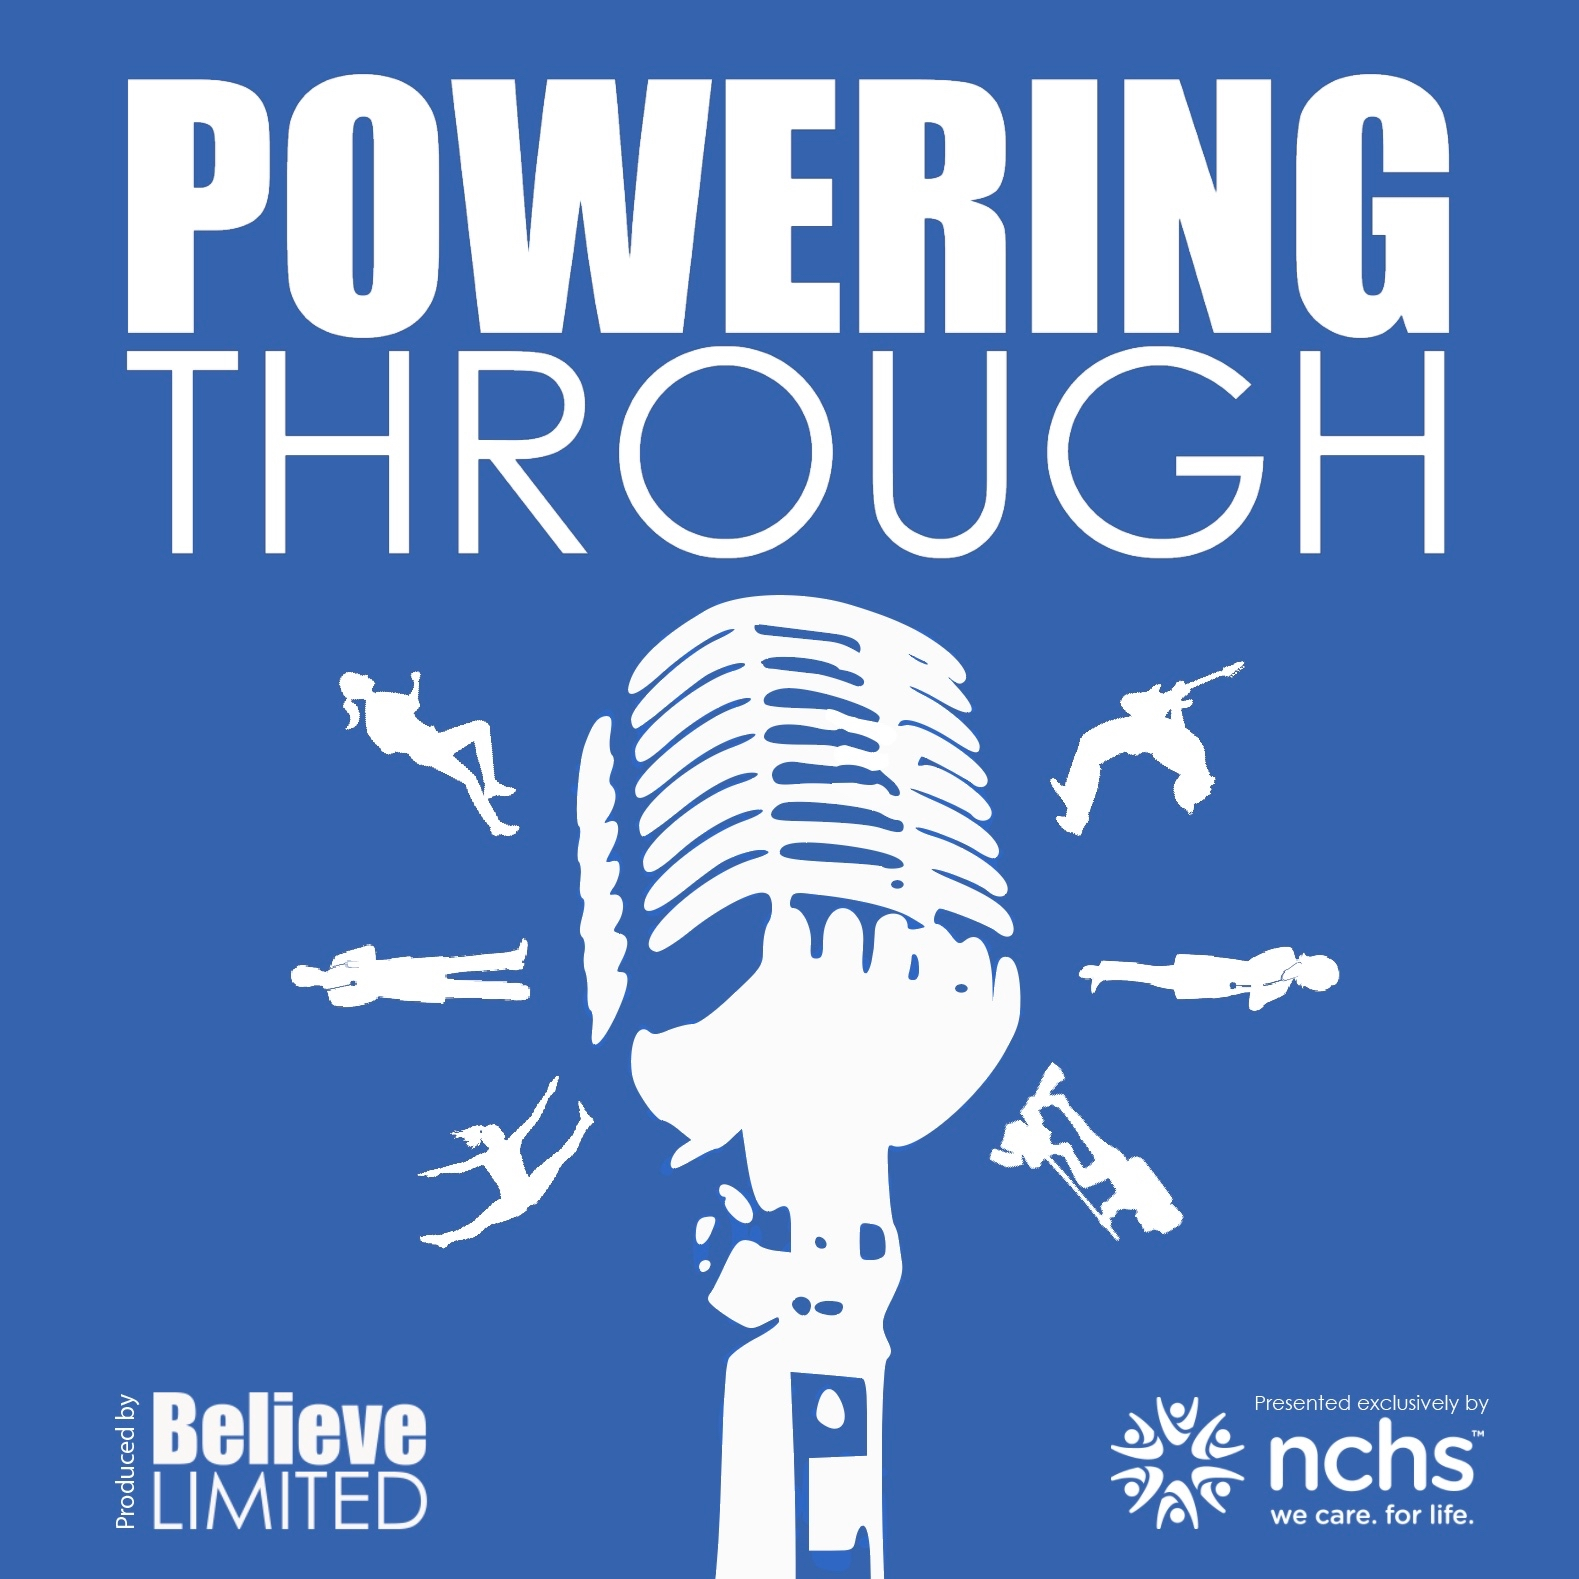 The Powering Through Podcast  is recorded live at Believe's nationwide Powering Through events, where we bring influencers from inside and outside of the community, of all ages and demos together to talk about overcoming life's obstacles. Powering Through podcast is brought to you by  National Cornerstone Healthcare Services (NCHS) , created and produced by  Believe Limited  and hosted by  Patrick James Lynch .